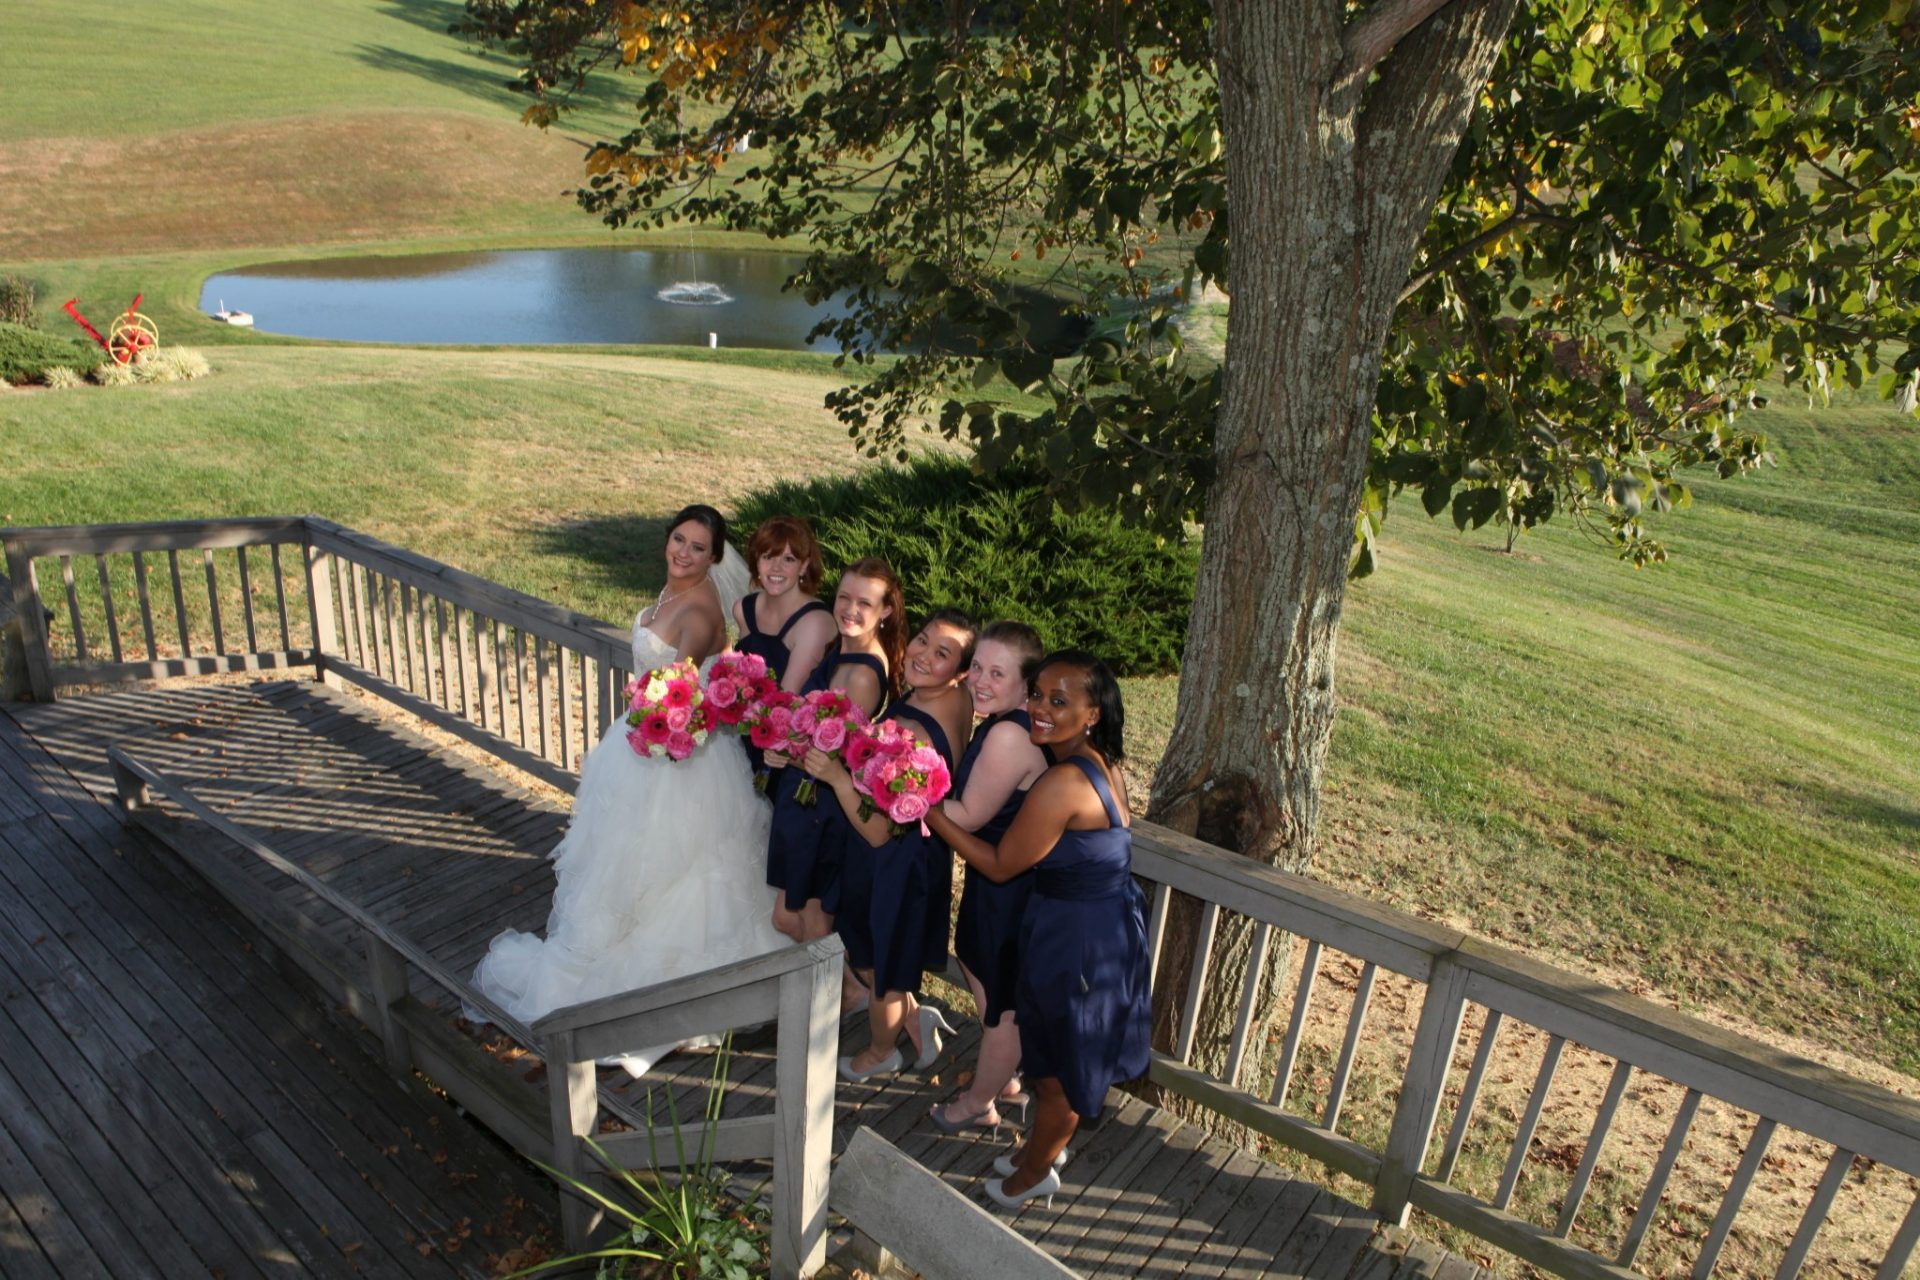 bride and bride's maids pose on deck that leads to the brick patio and wedding pavilion